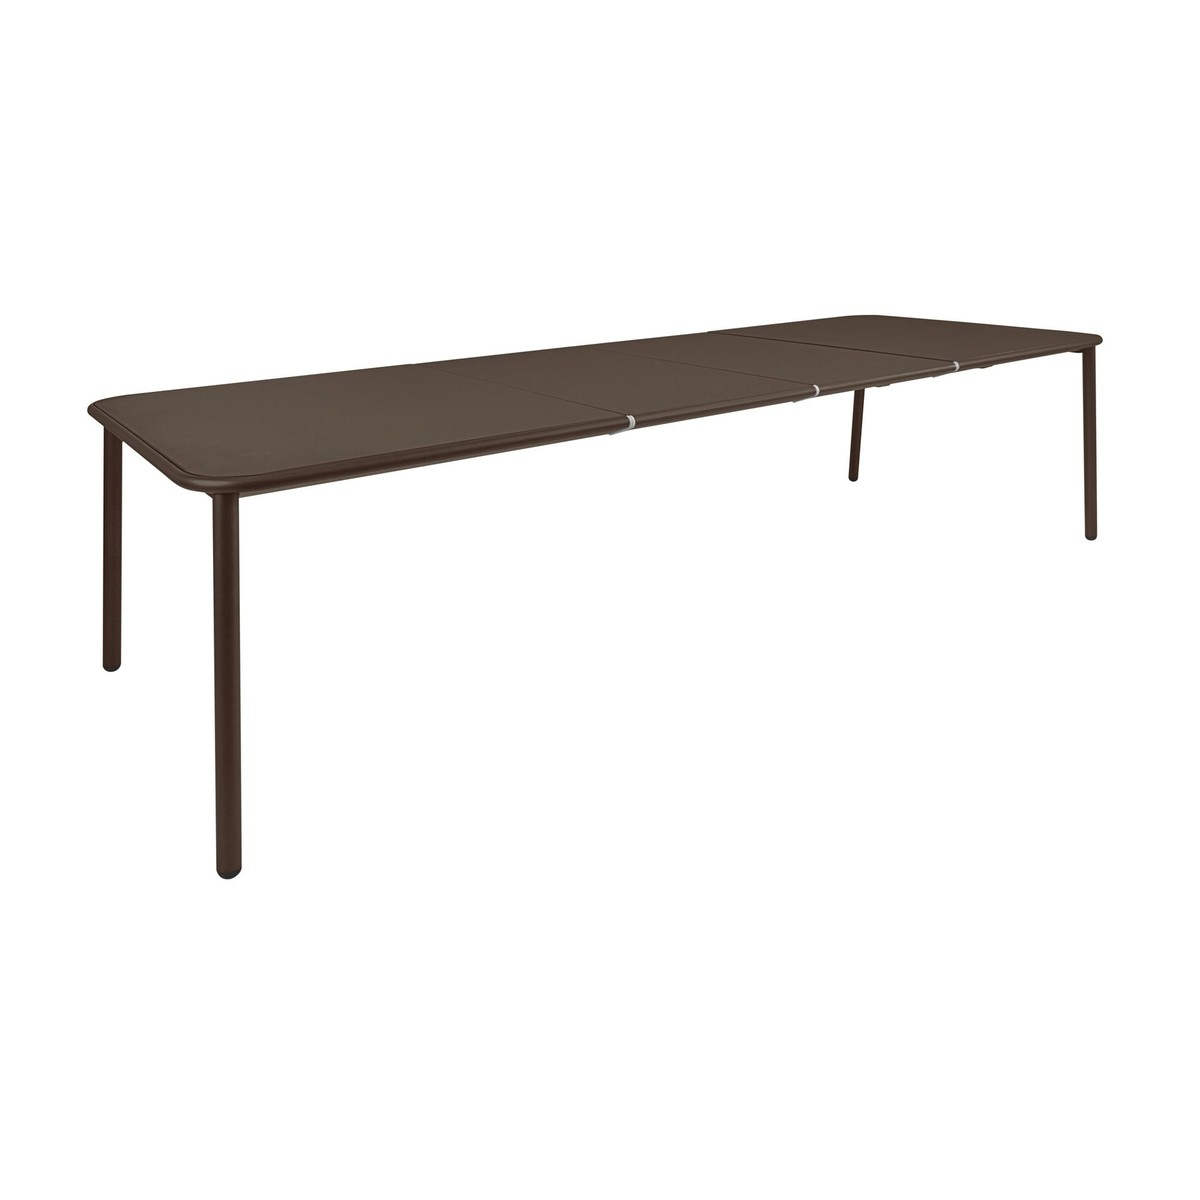 yard table de jardin extensible de aluminium emu. Black Bedroom Furniture Sets. Home Design Ideas